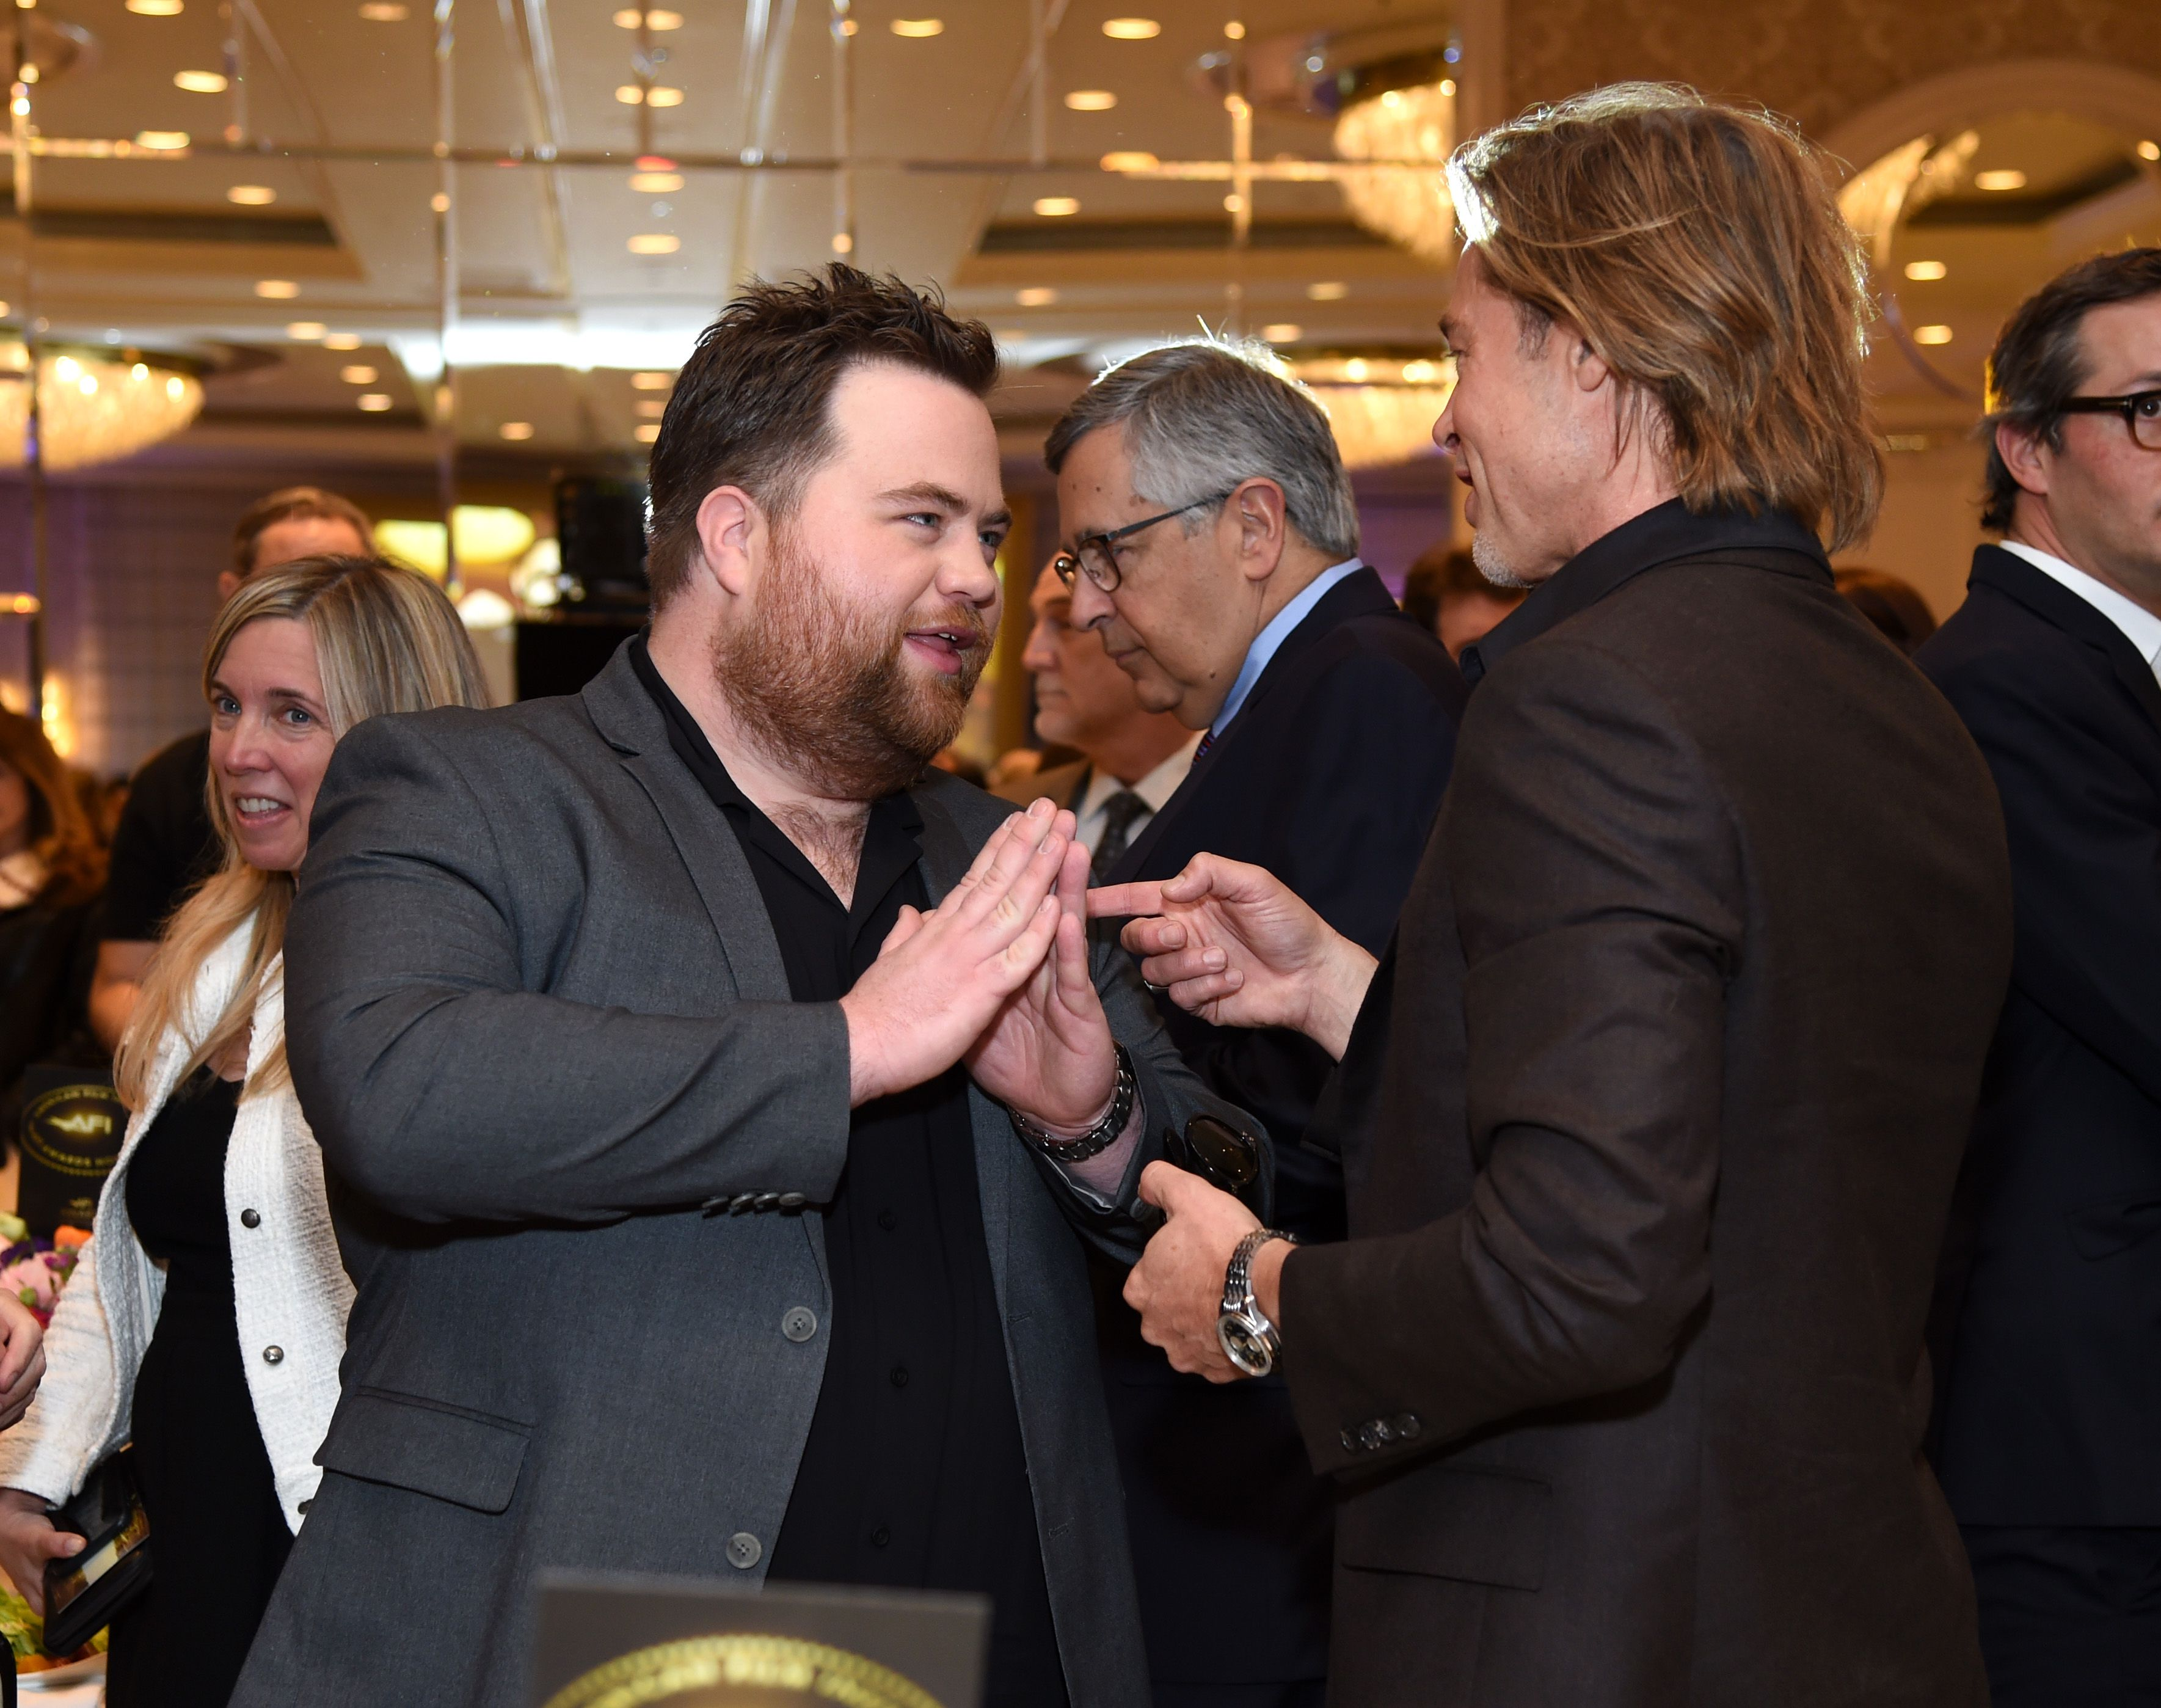 LOS ANGELES, CALIFORNIA - JANUARY 03: Actors Paul Walter Hauser and Brad Pitt attend the 20th Annual AFI Awards at Four Seasons Hotel Los Angeles at Beverly Hills on January 03, 2020 in Los Angeles, California. (Photo by Michael Kovac/Getty Images for AFI)